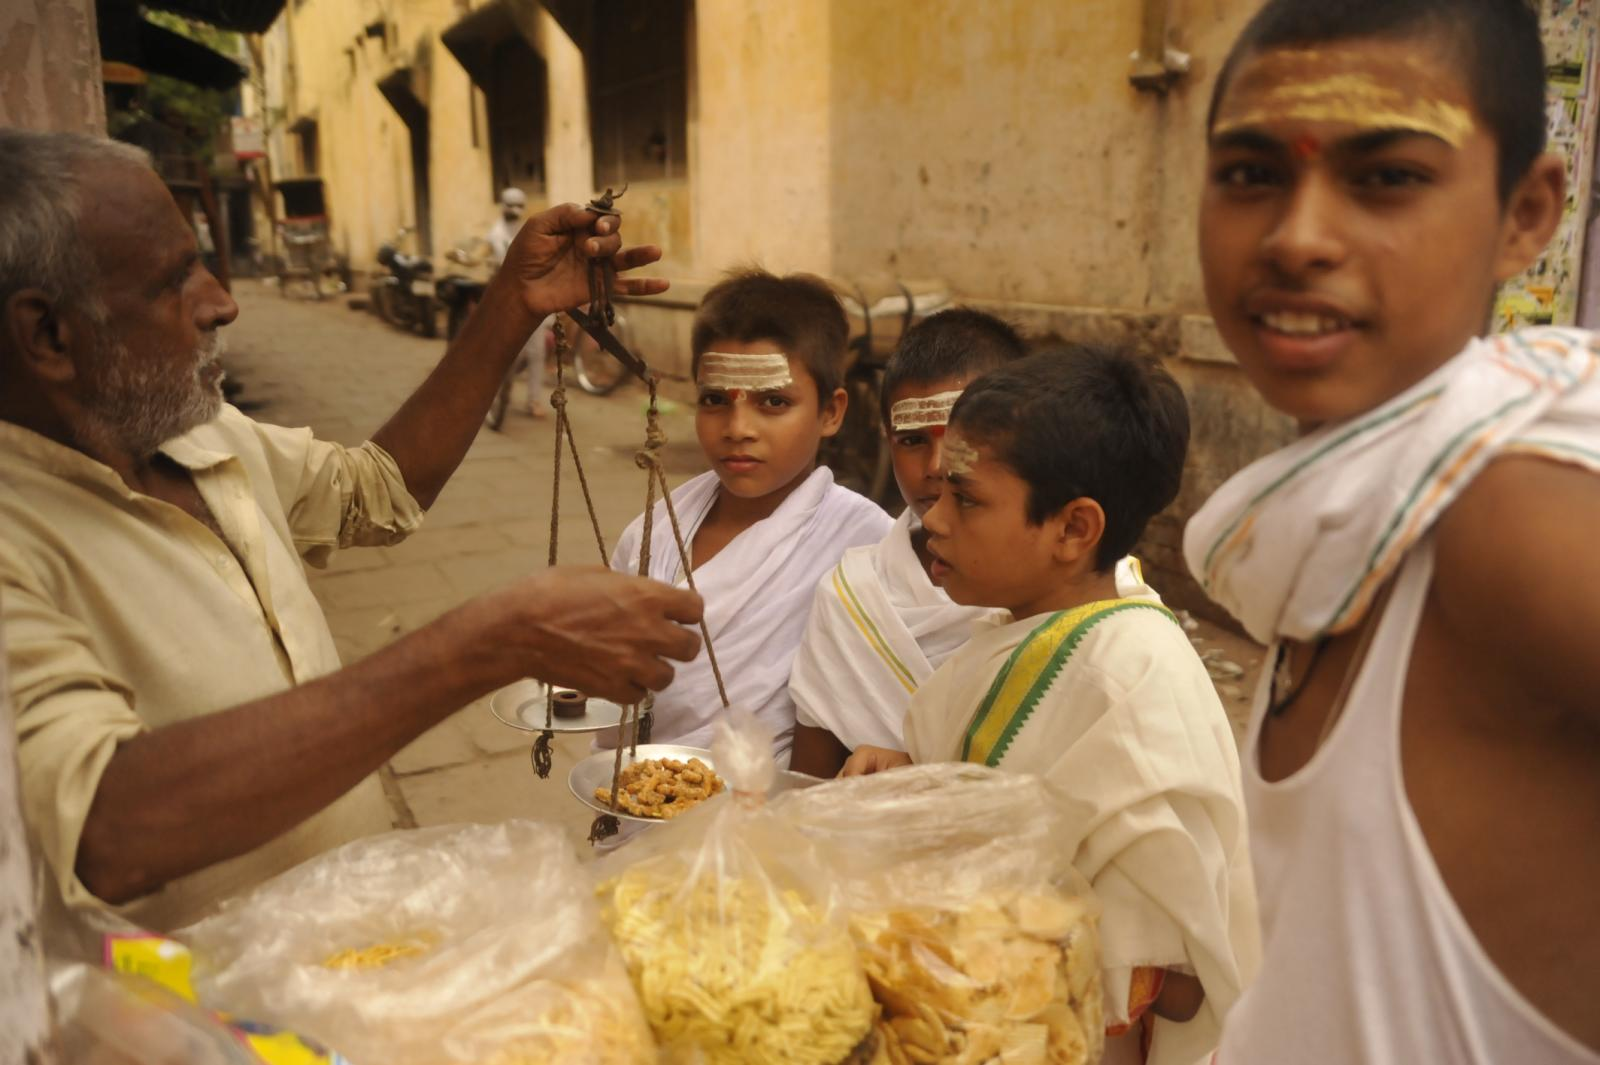 Incredible India! - Varanasi : Alleys and stories within